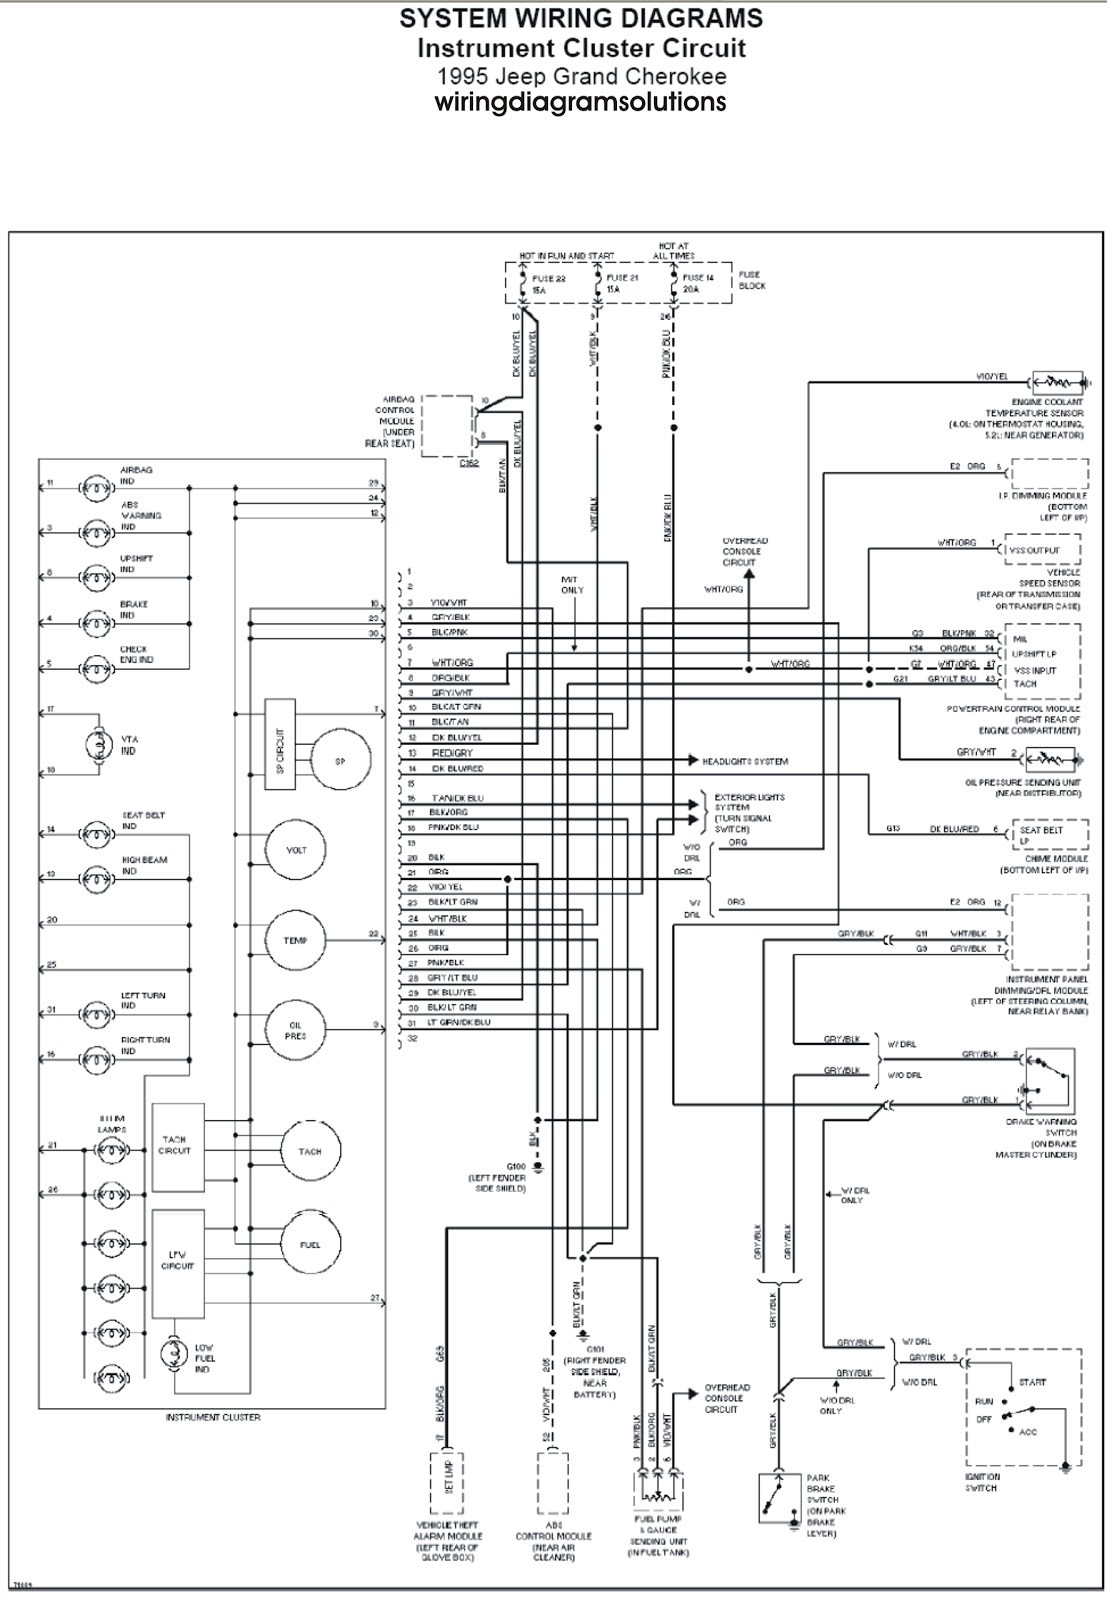 Wiring diagram for 1999 jeep grand cherokee auto electrical wiring 1999 jeep grand cherokee infinity stereo wiring diagram best of rh mainetreasurechest com stereo wiring diagram for 1999 jeep grand cherokee wiring diagram cheapraybanclubmaster Images